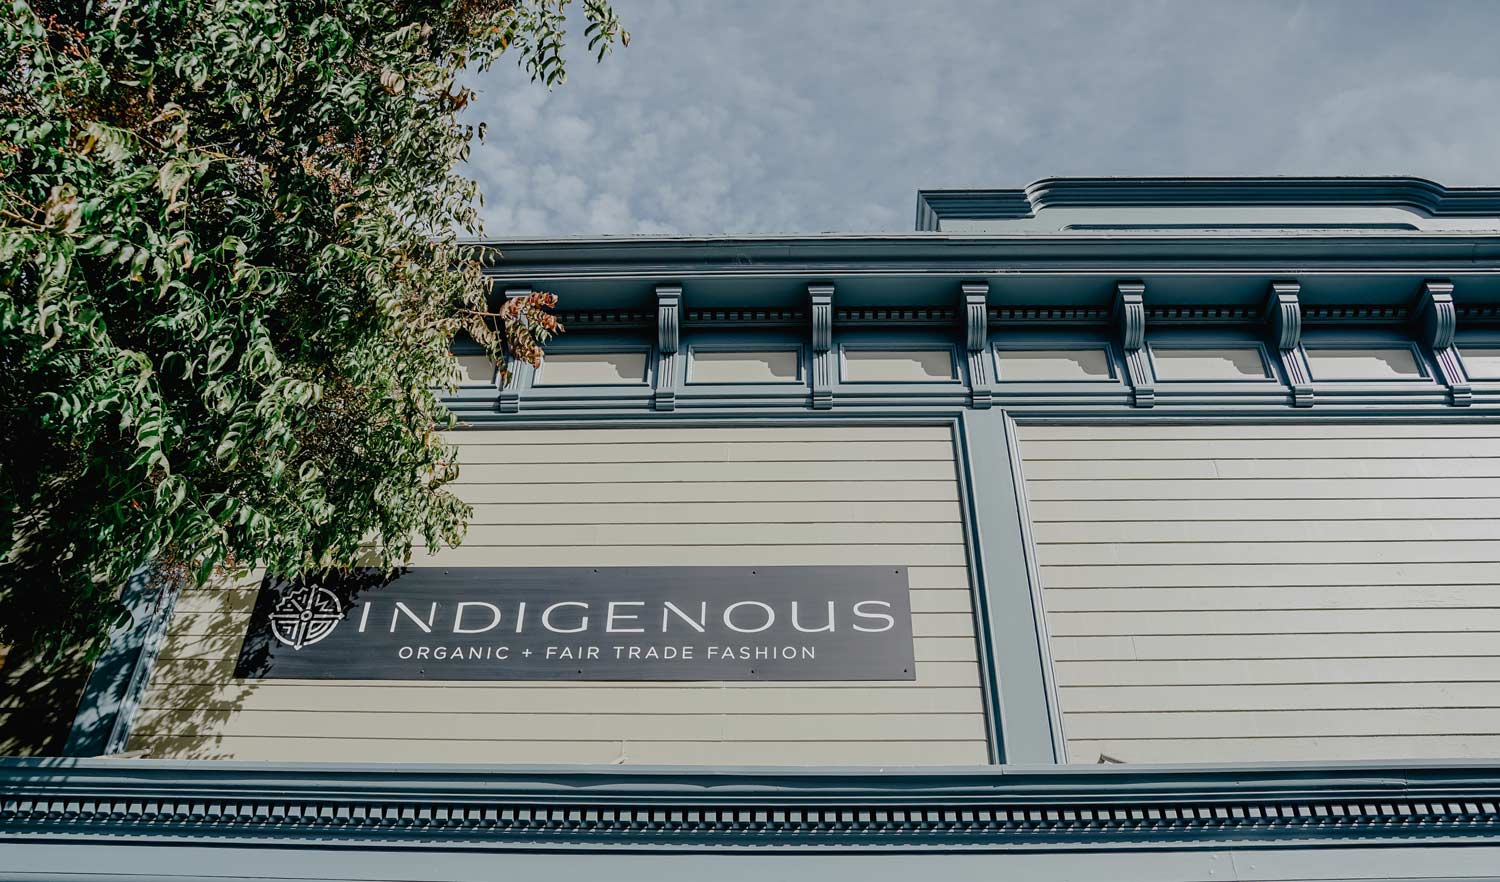 Indigenous sustainable fashion boutique in Petaluma Ca